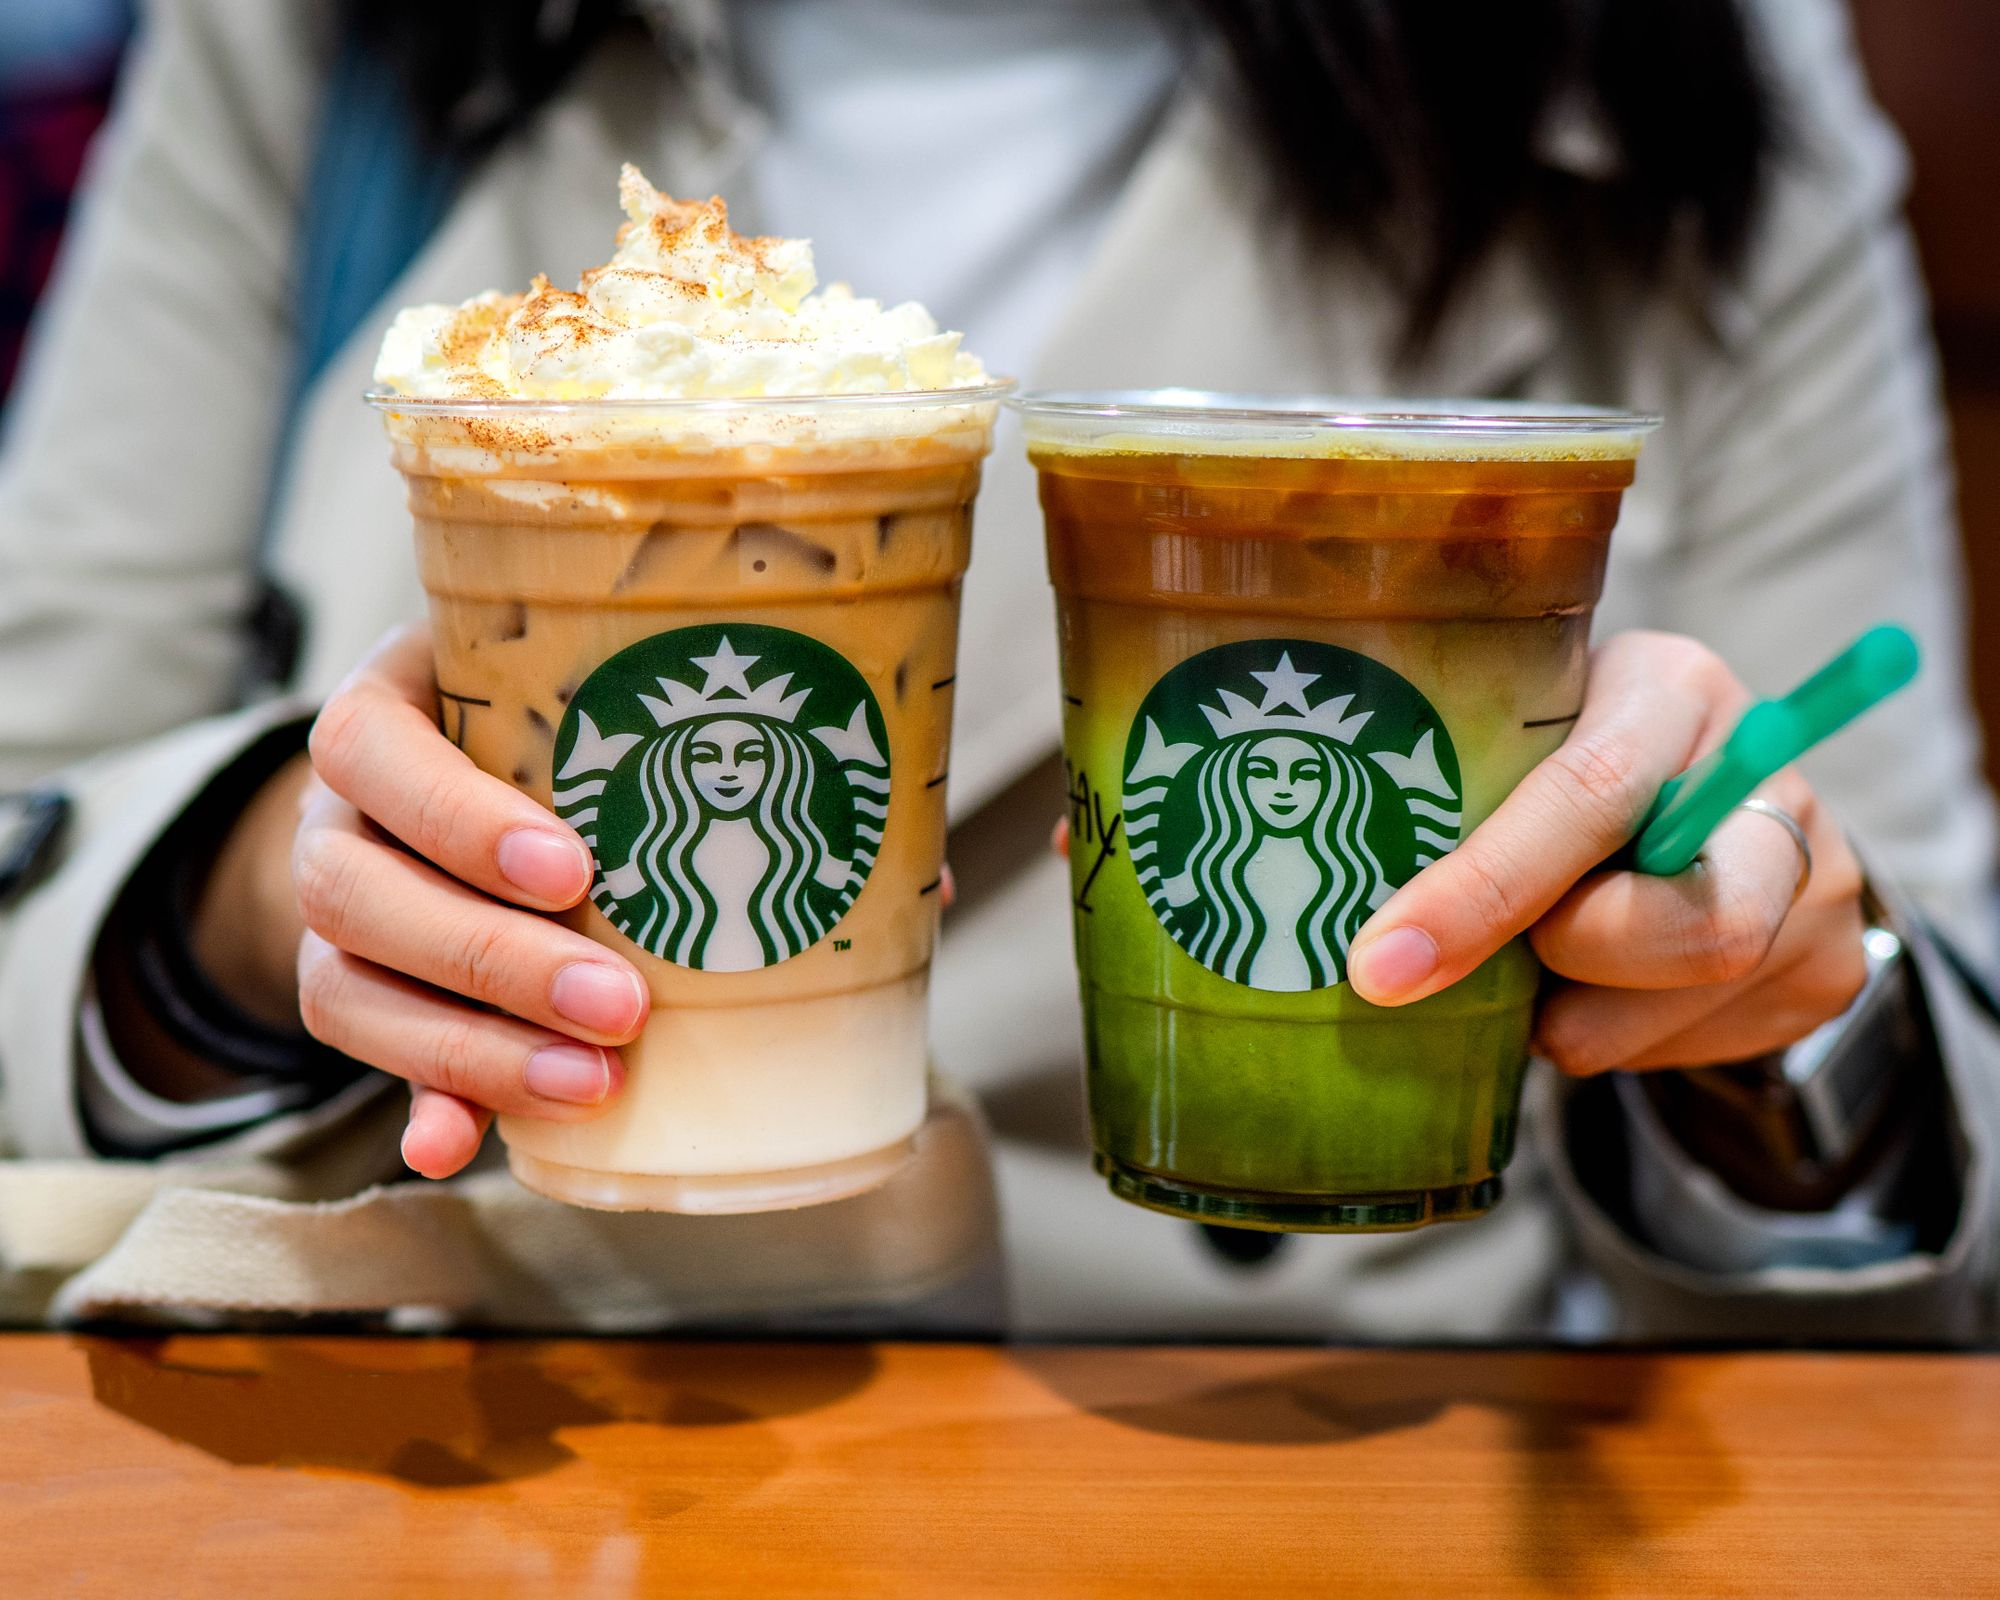 I Love New Drinks Whats Your Starbucks Order At 9pm In The City Its Hard To Pass Up On A Caffei Cinnamon Dolce Coffee Dessert Starbucks Frappuccino Bottle